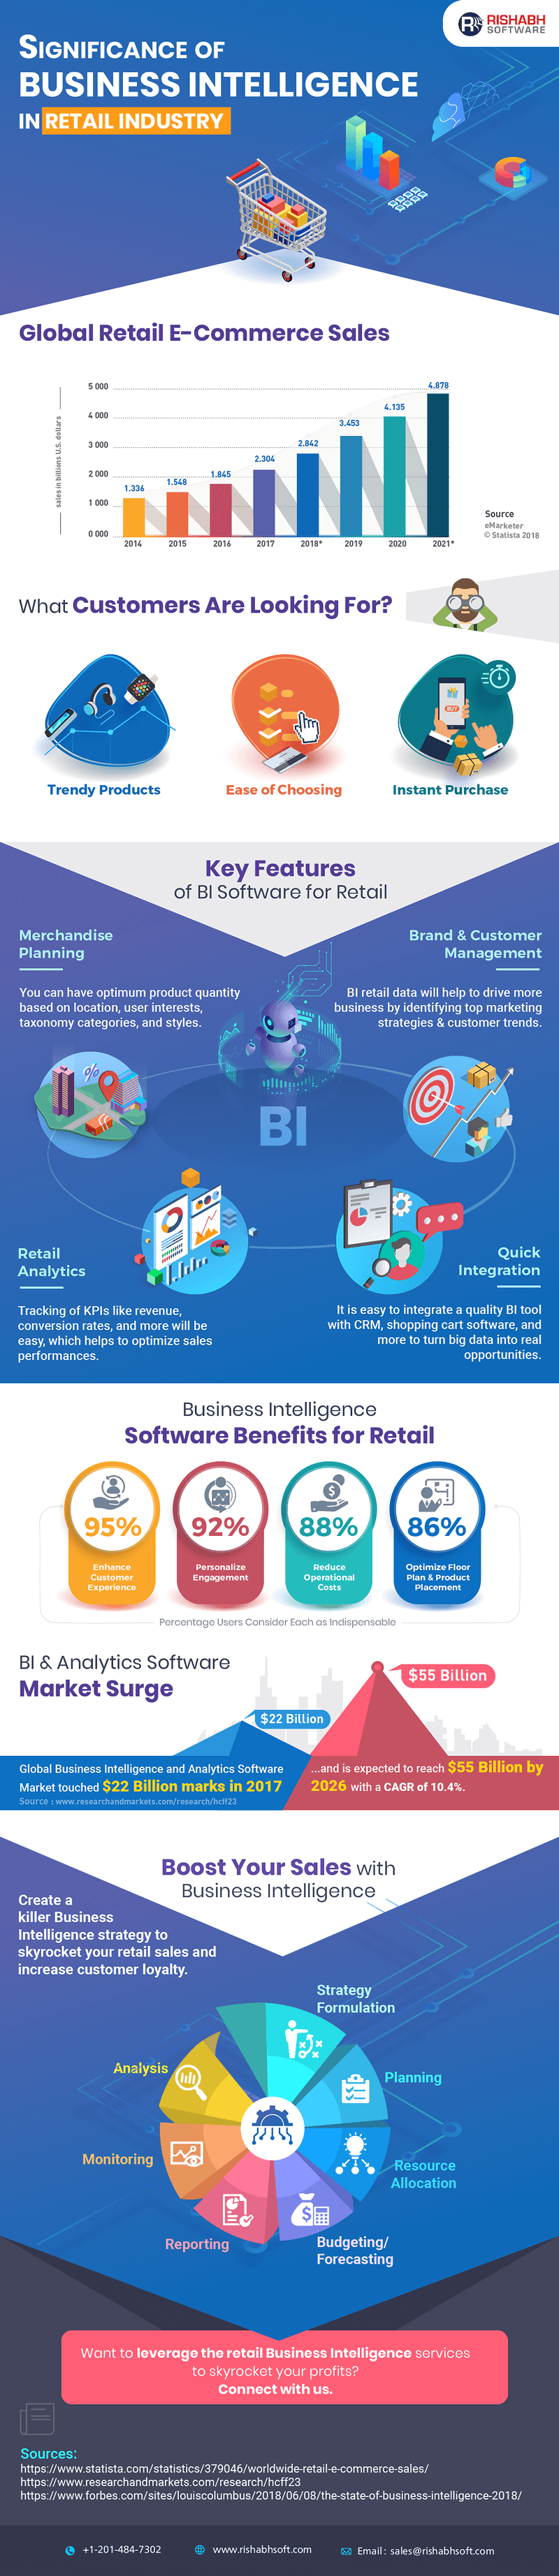 Significance-of-Business-Intelligence-in-Retail-Industry-infograph